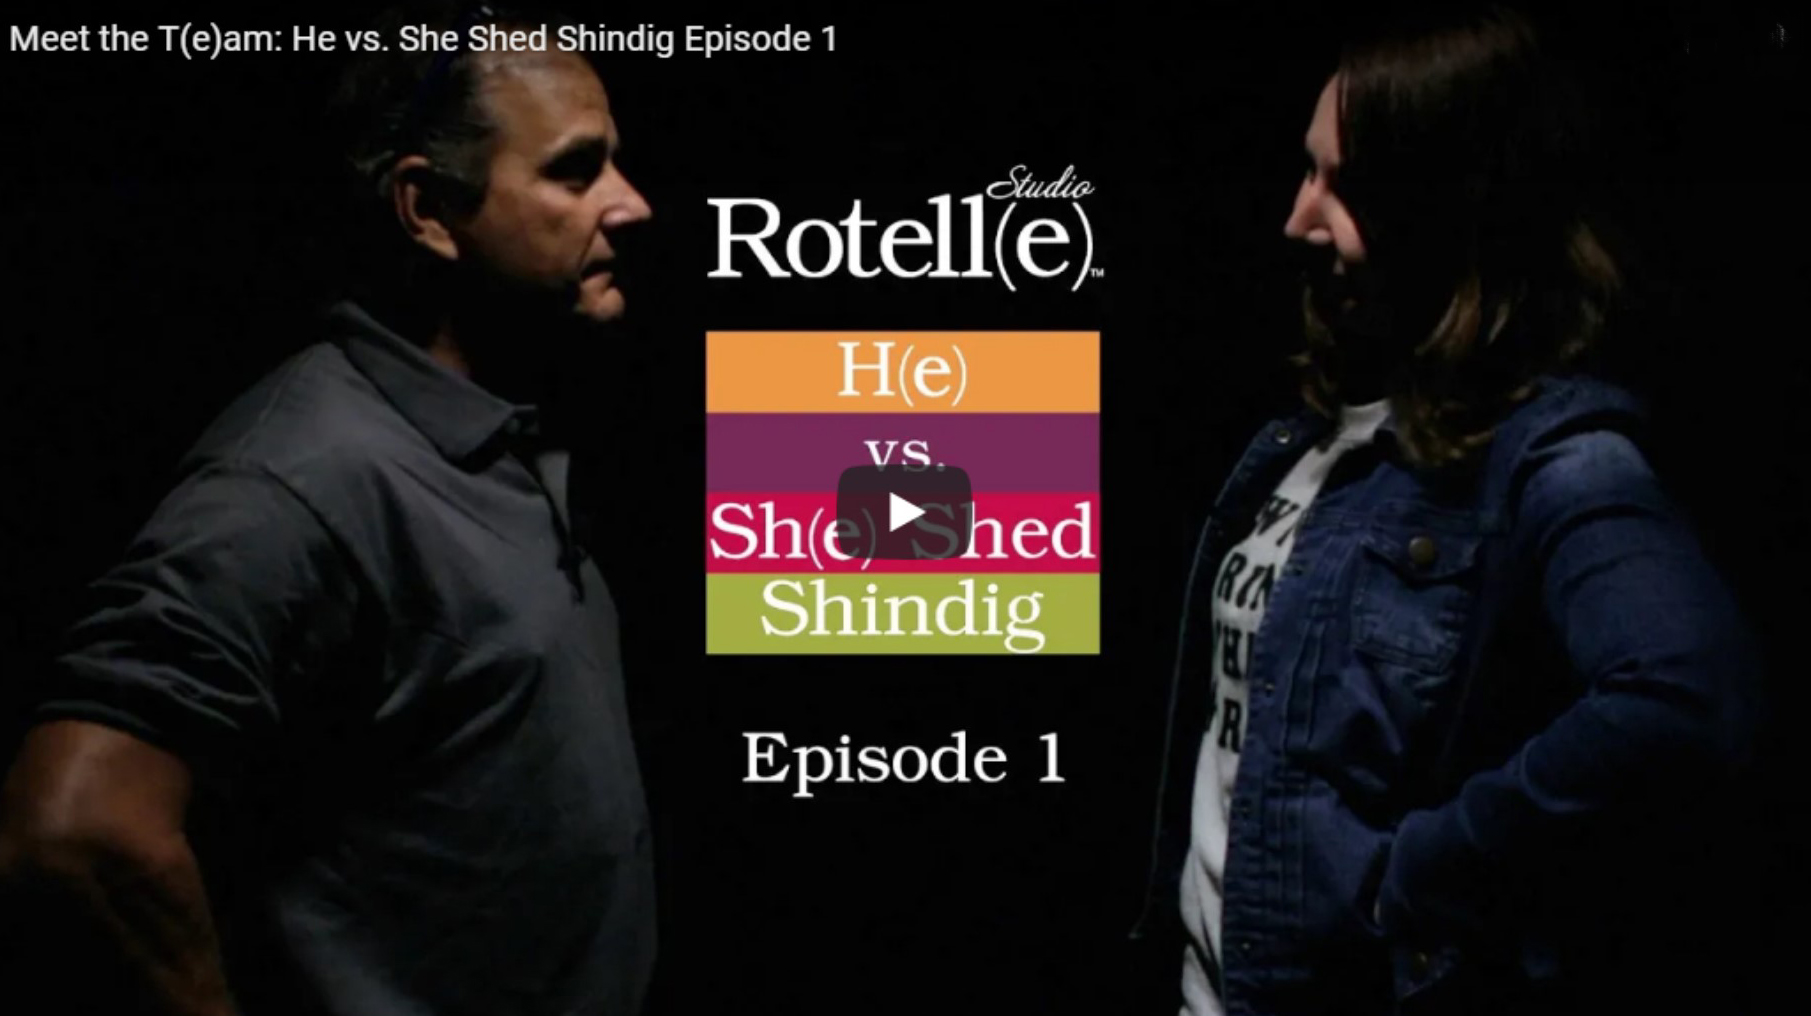 He vs. She Shed Shindig Episodes